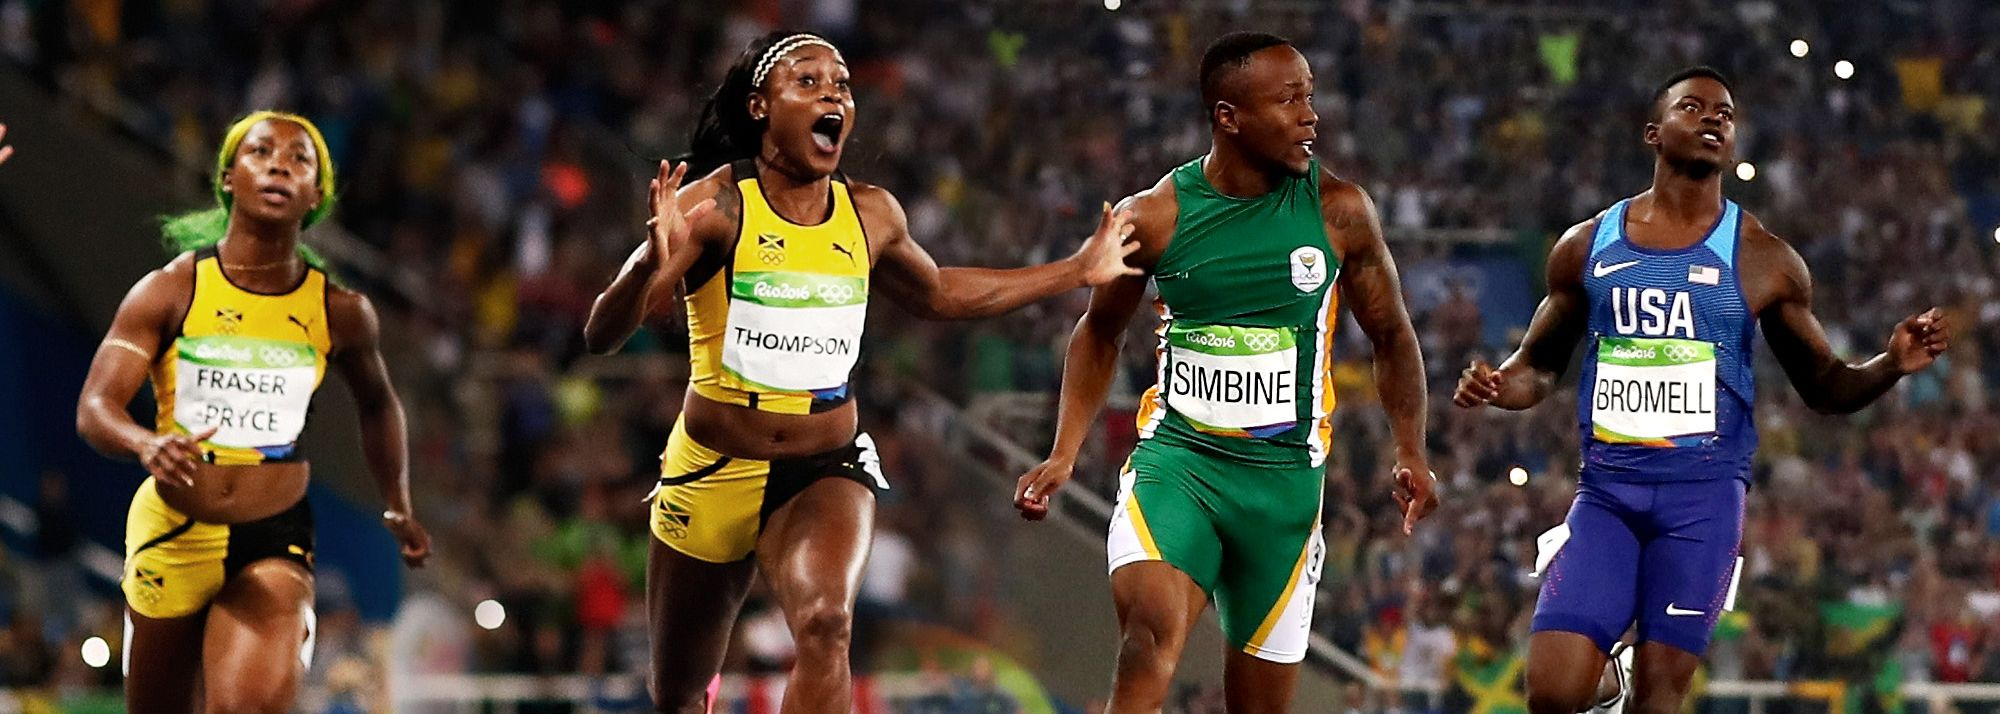 Expected highlights in the 100m